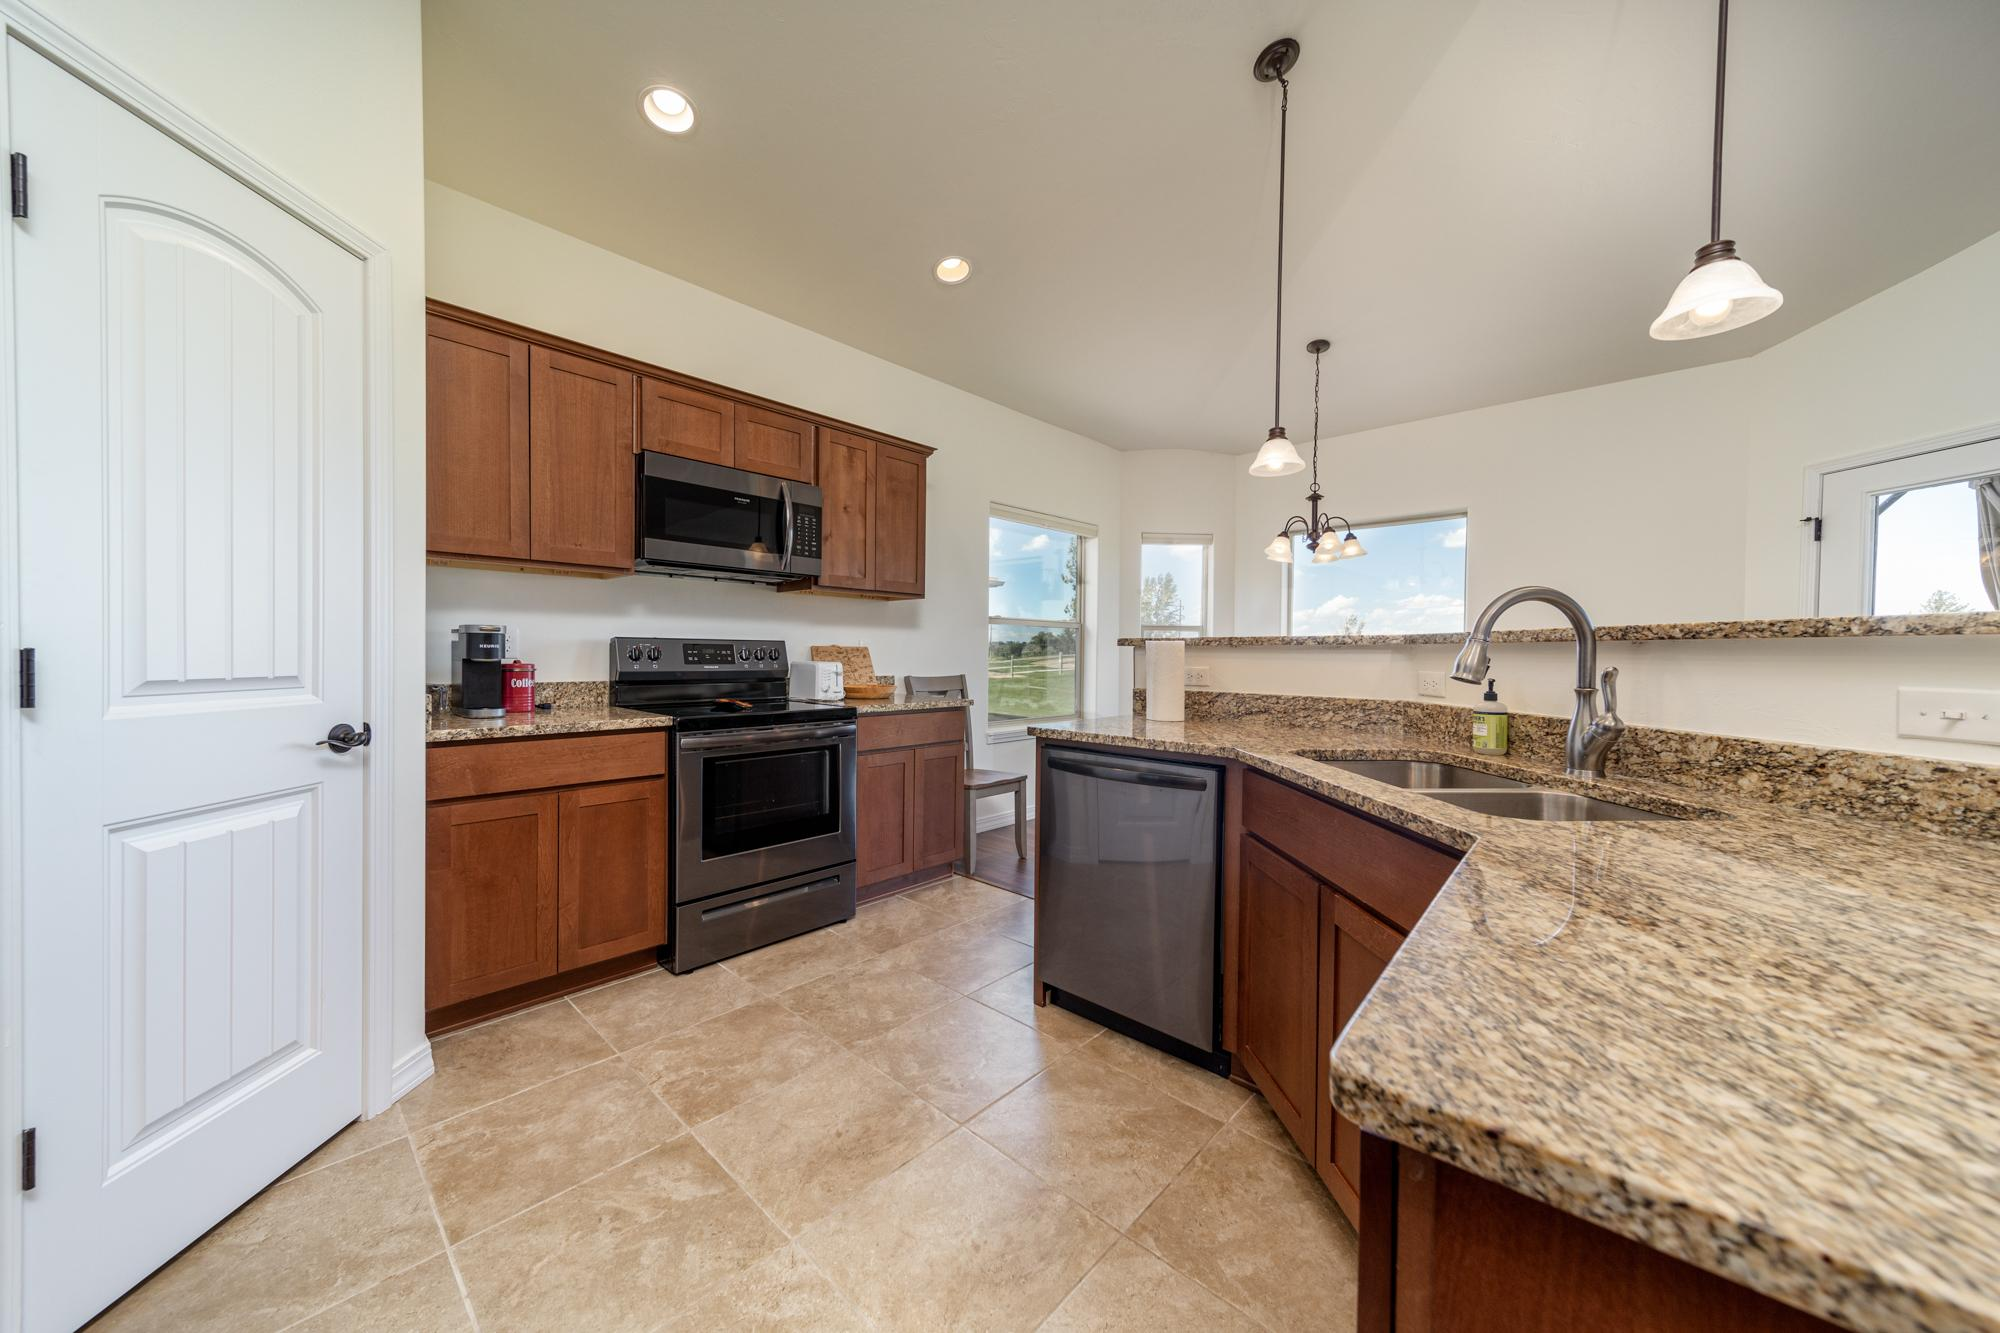 Kitchen with Granite Counters - 597 Cobble Dr Montrose, CO - Atha Team MLS Colorado